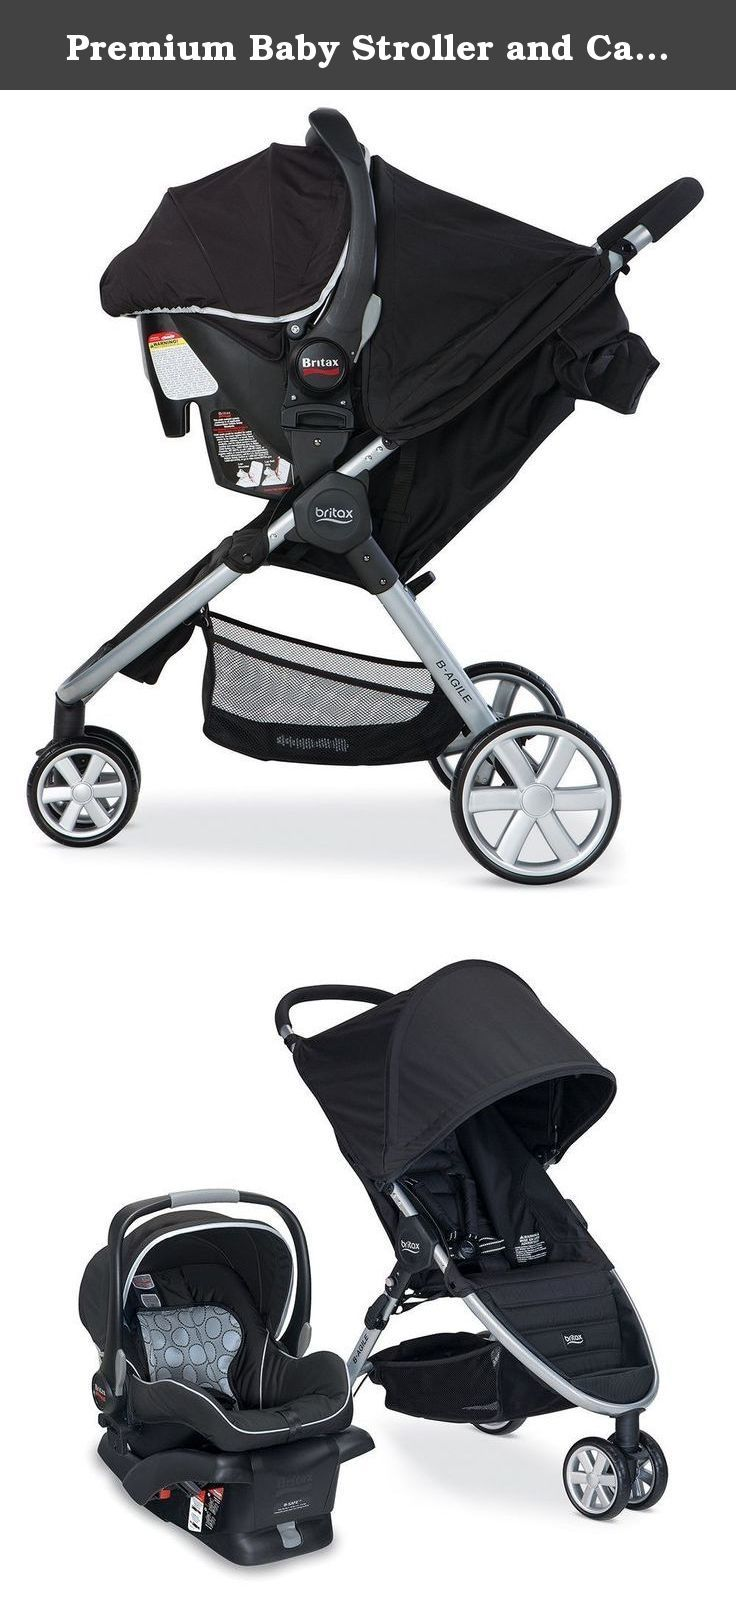 Britax Car Seat With Stroller Premium Baby Stroller And Car Seat Combo Pram Travel System